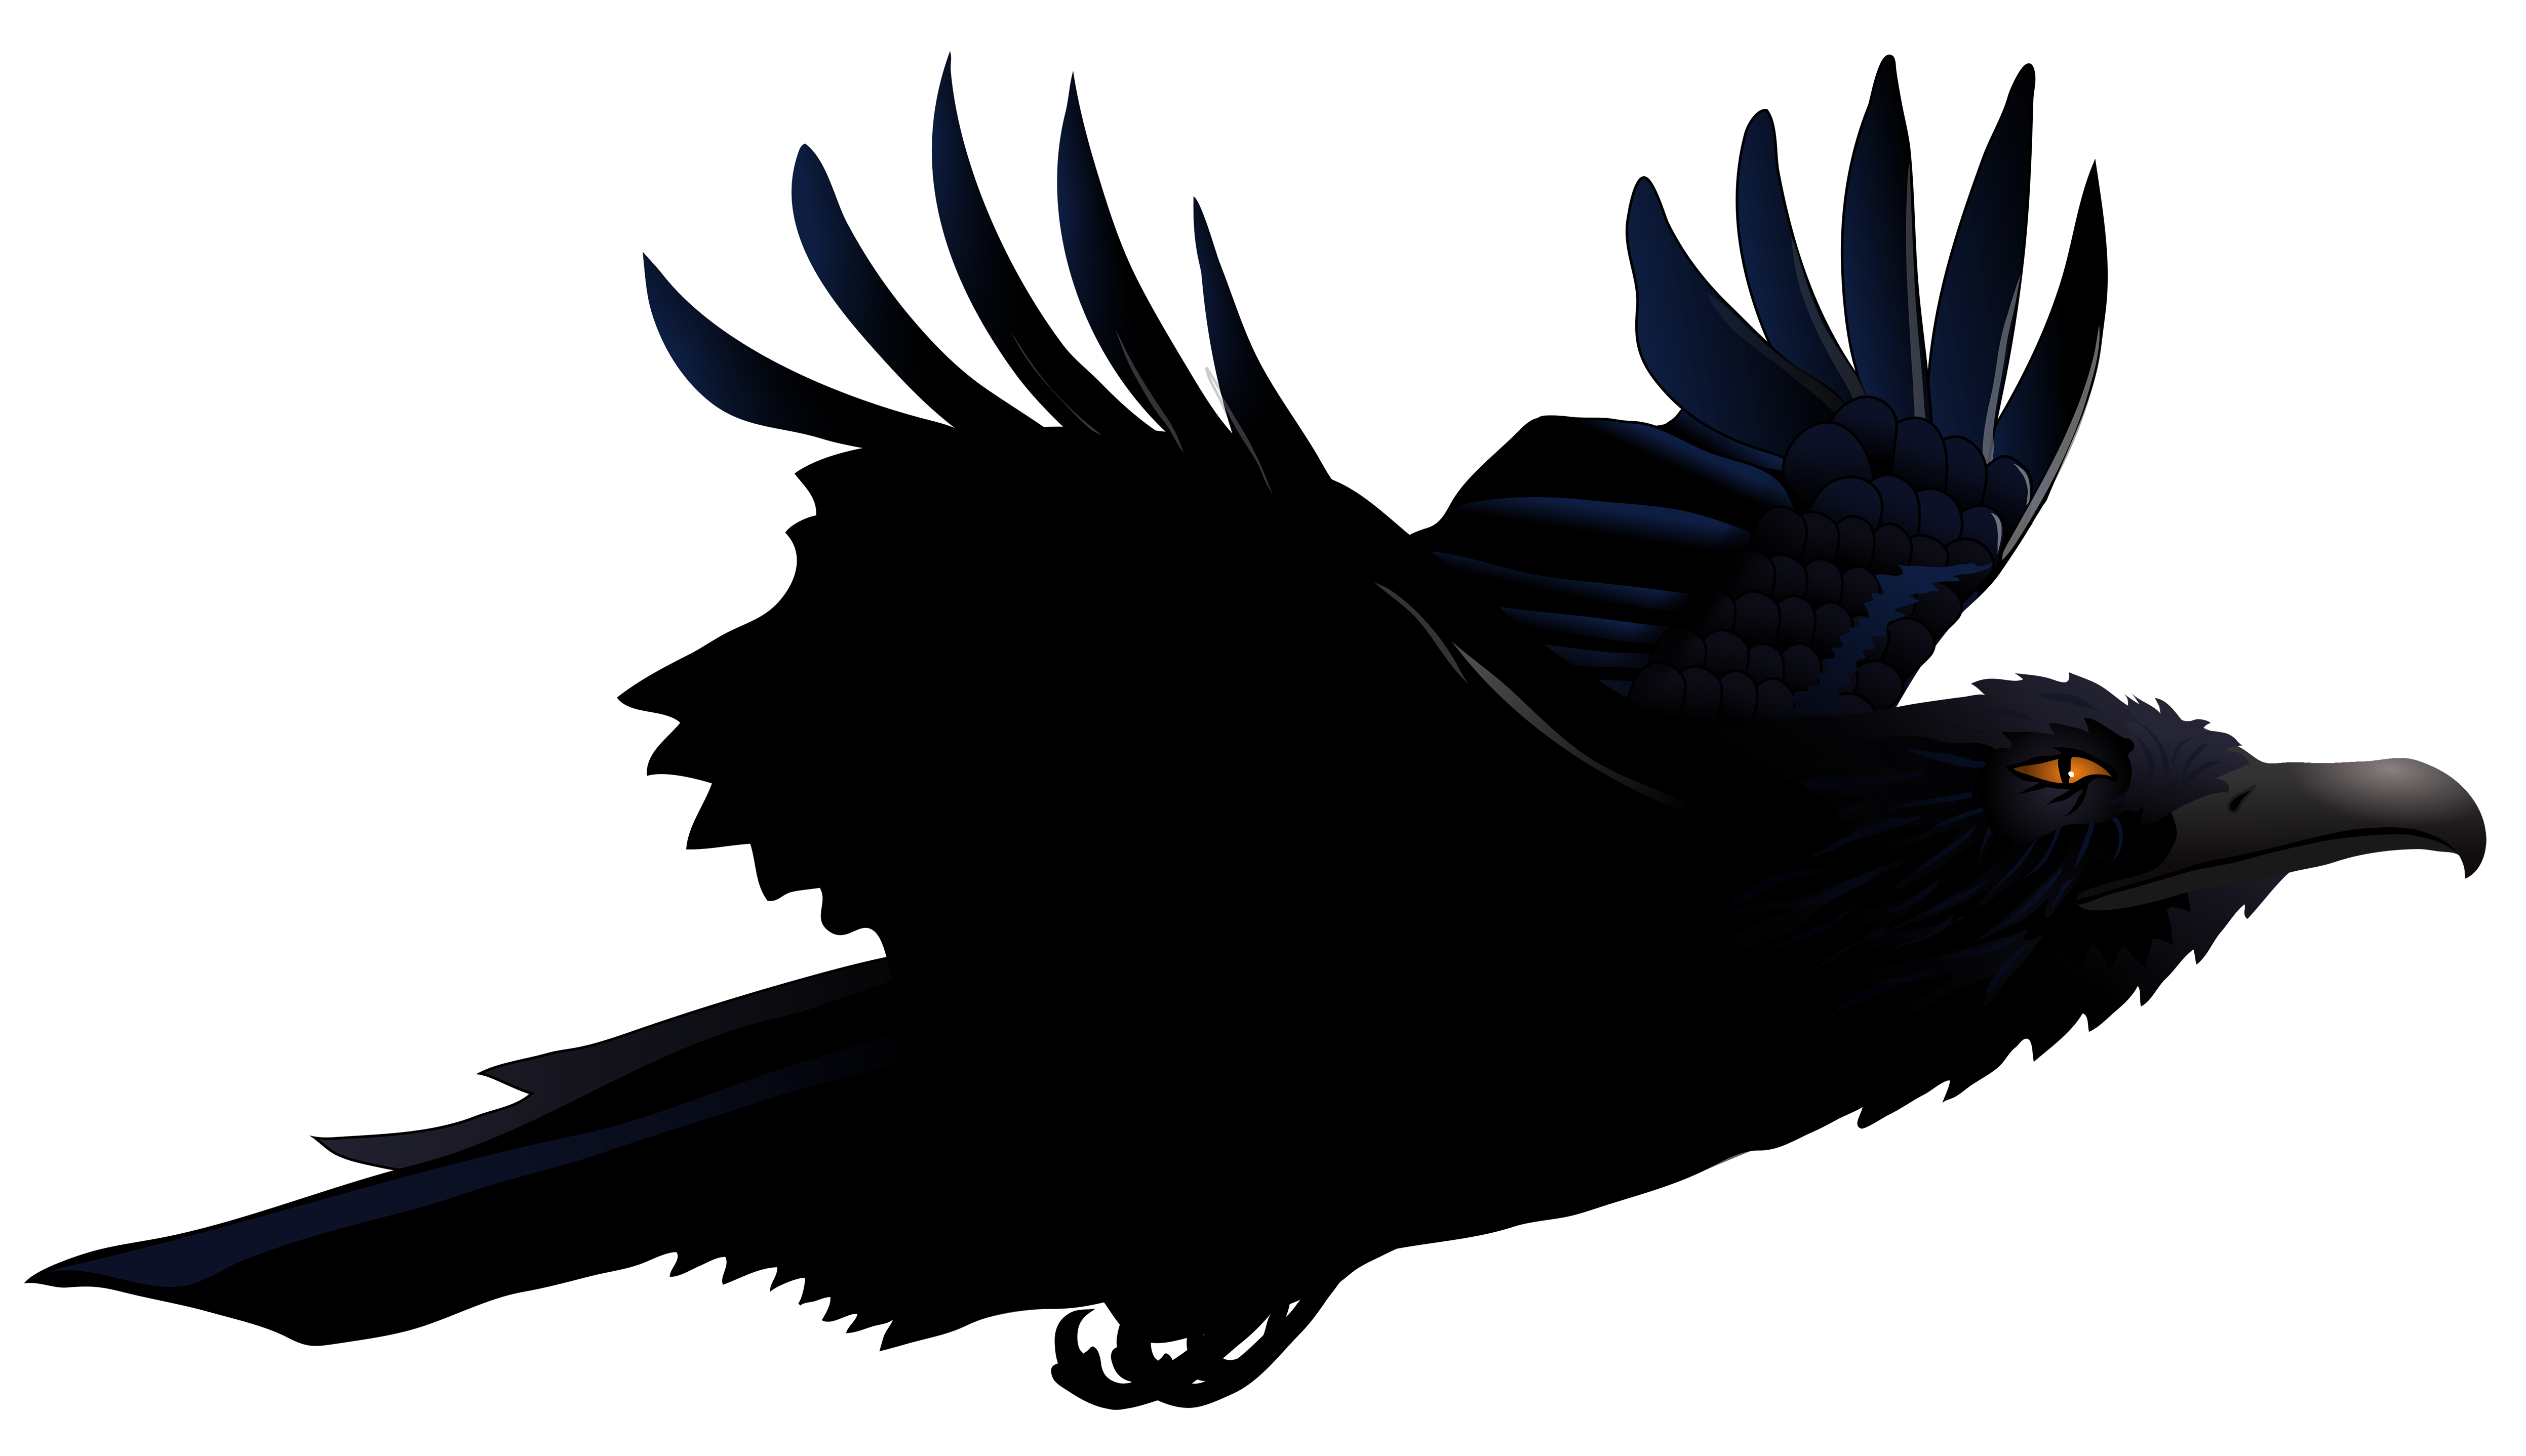 Raven Png - View full size